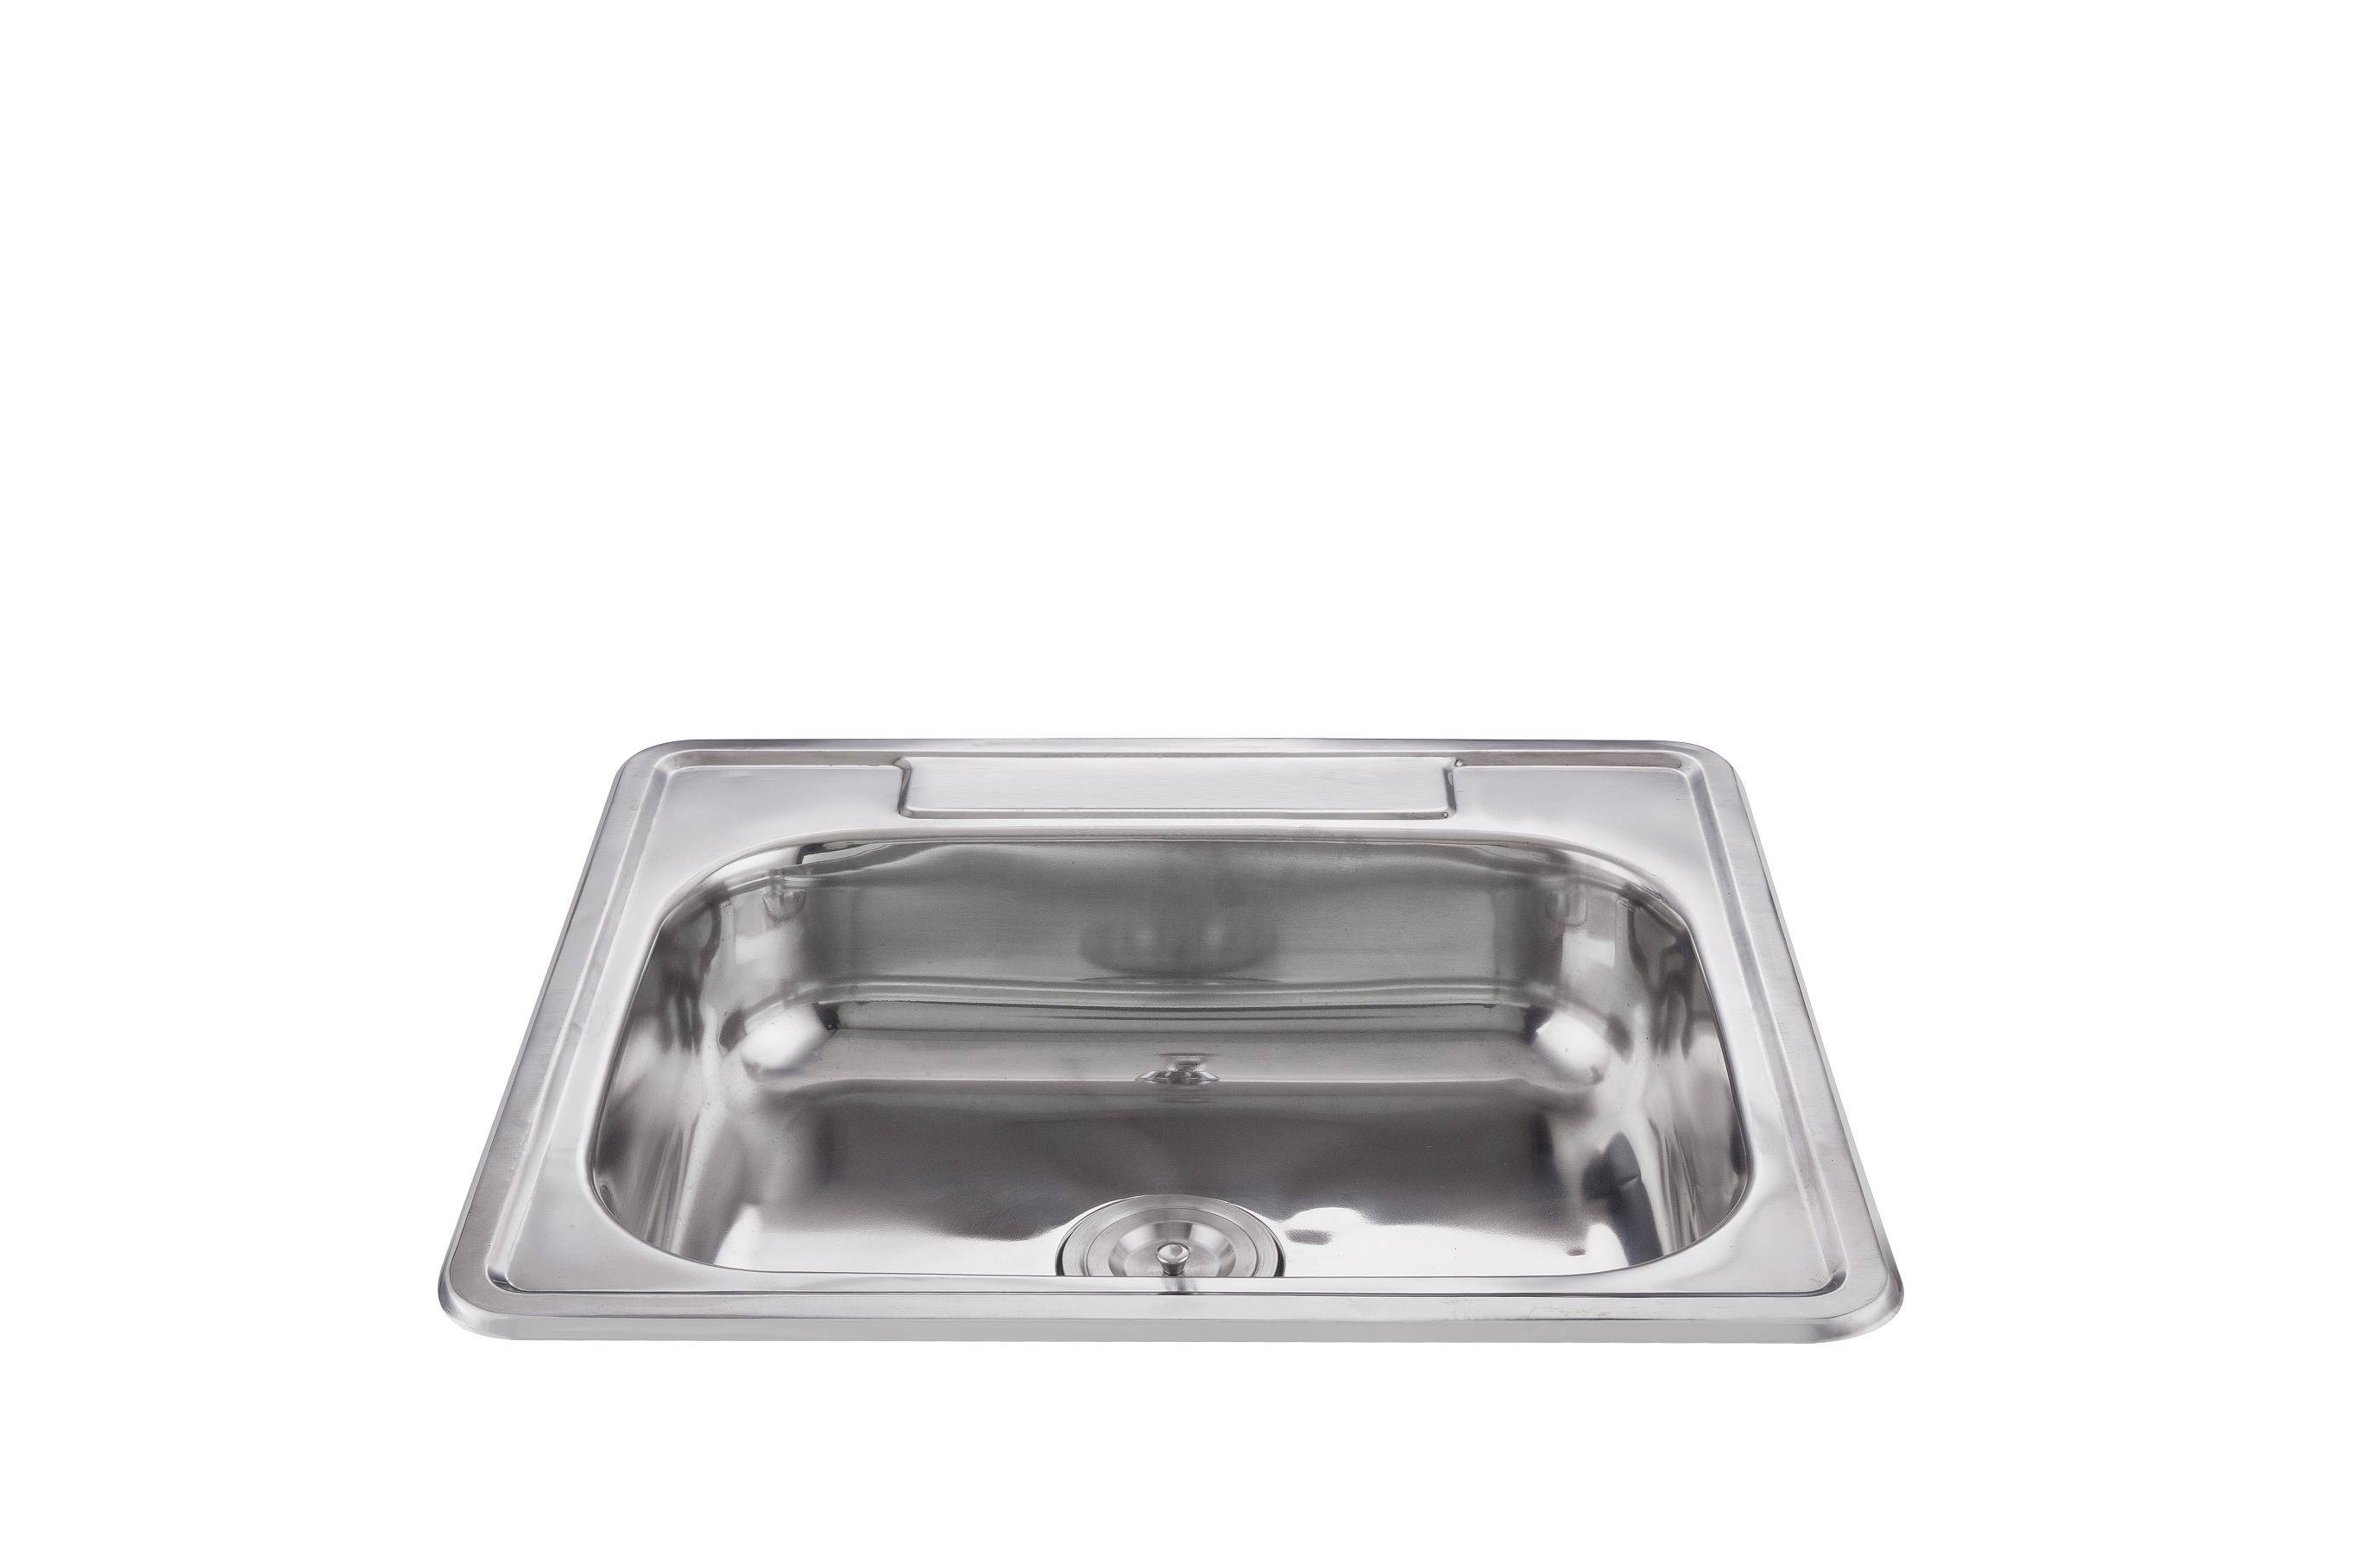 Hot sale widely used large volume rectangular kitchen sink 25*22